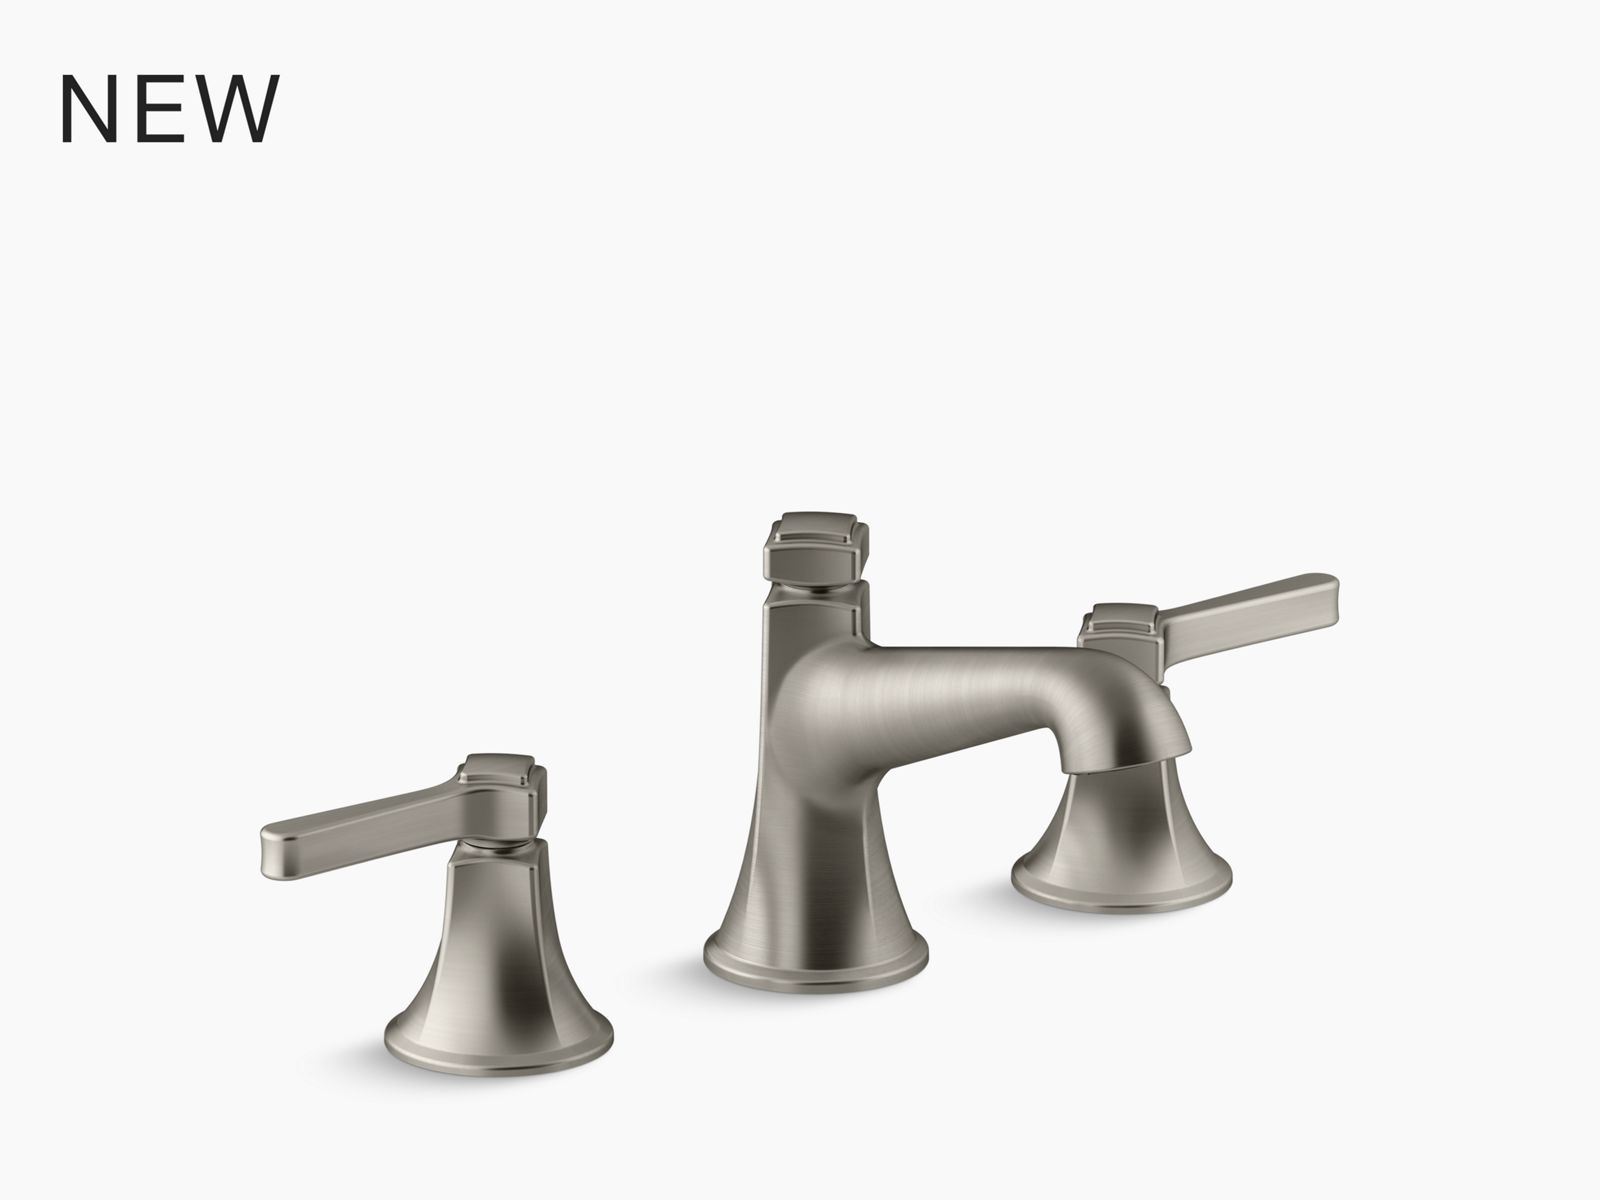 purist vertical spray bidet faucet with lever handles